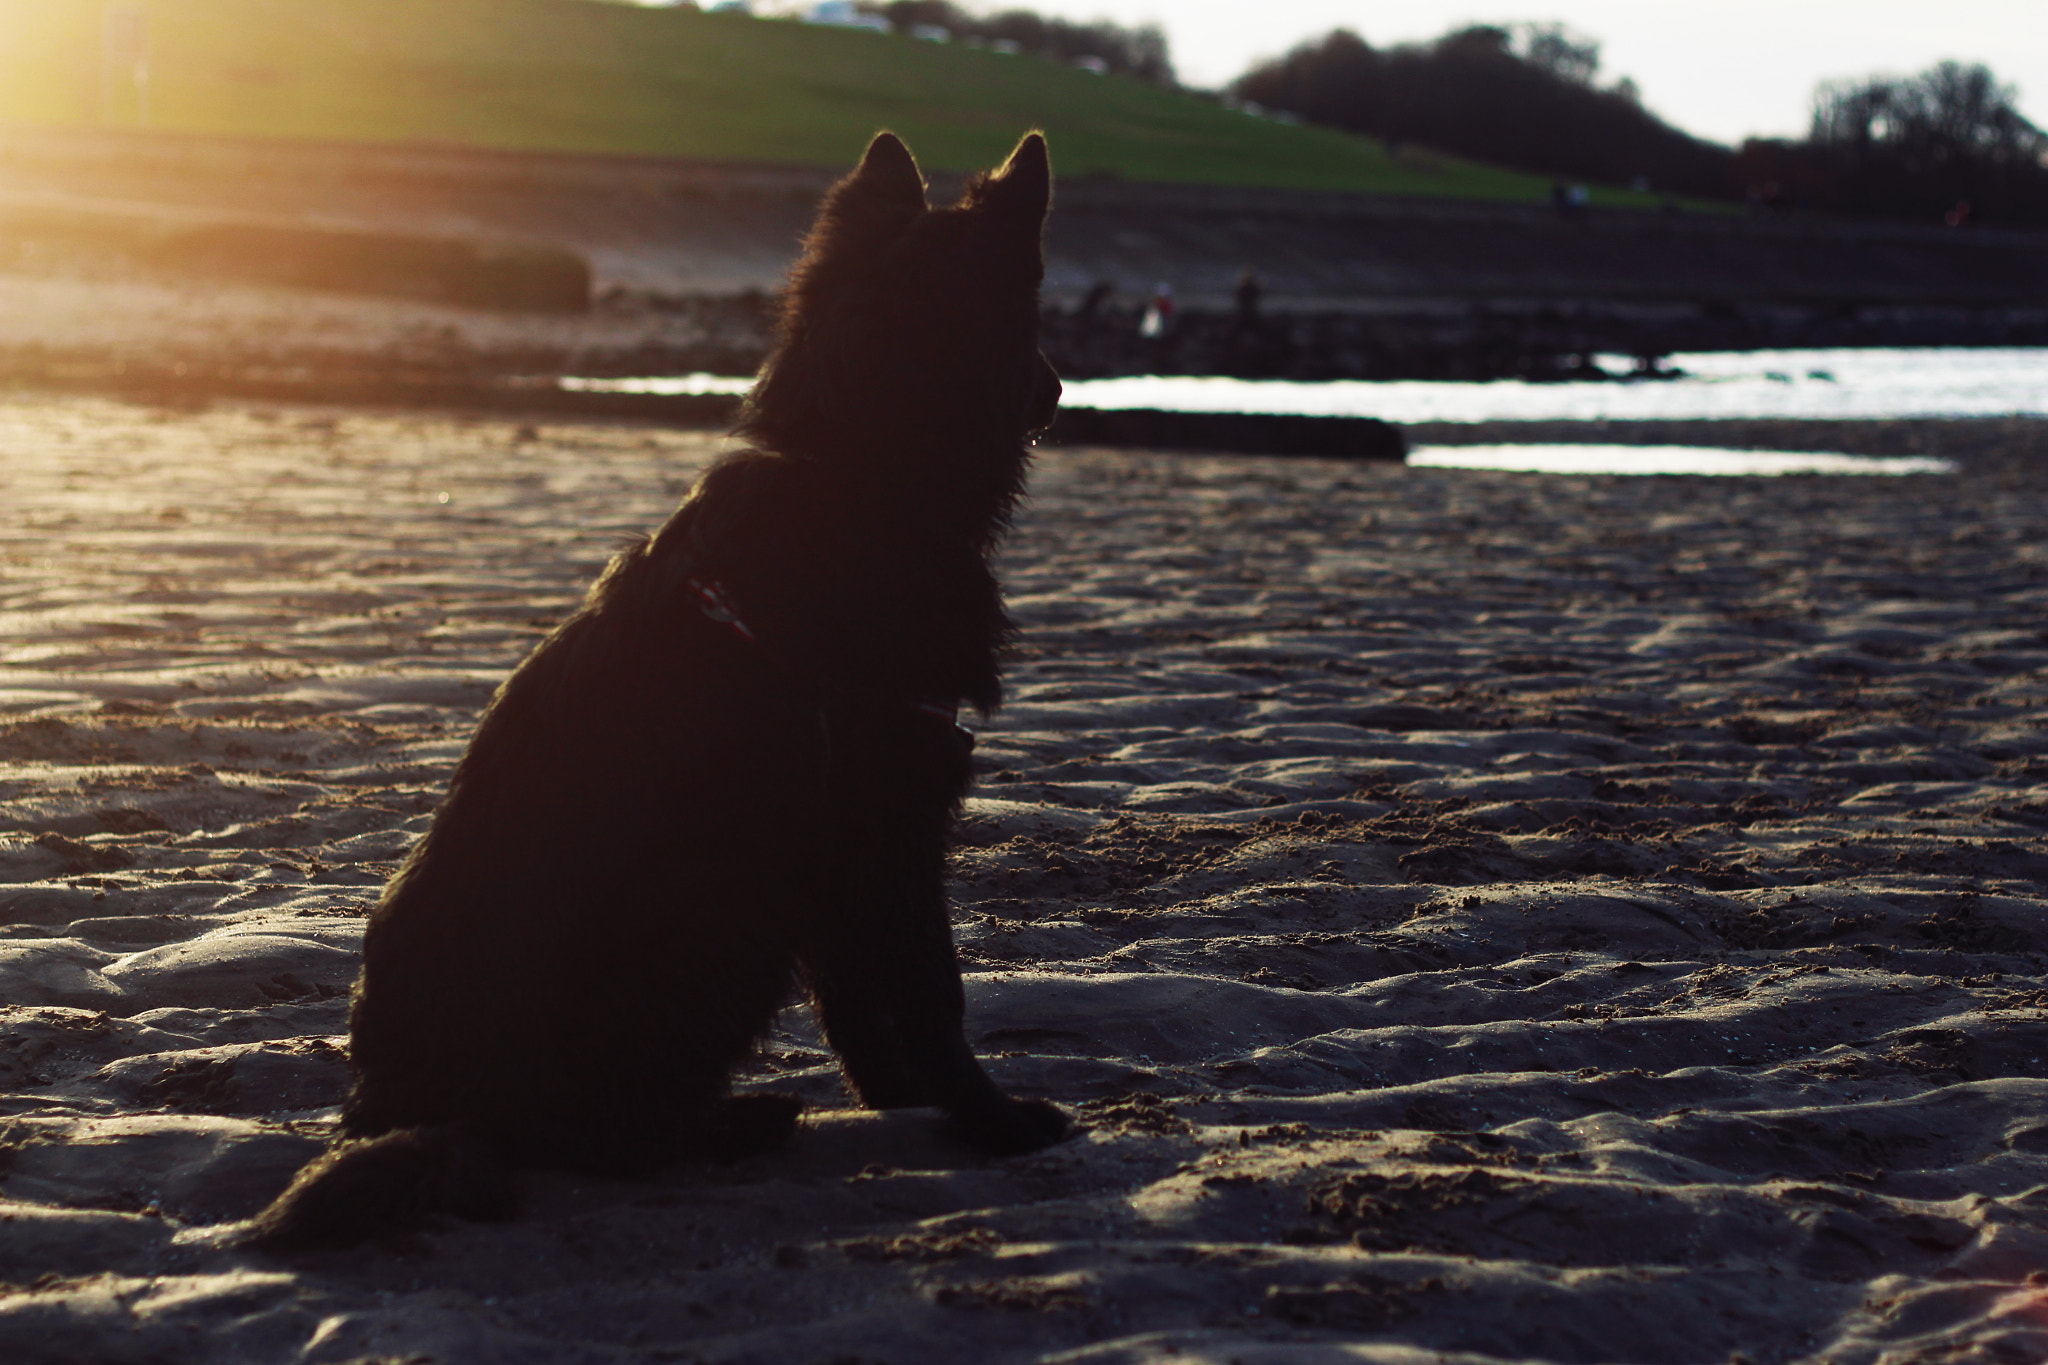 Photograph Brunos first day at the beach by Gordon Foley on 500px